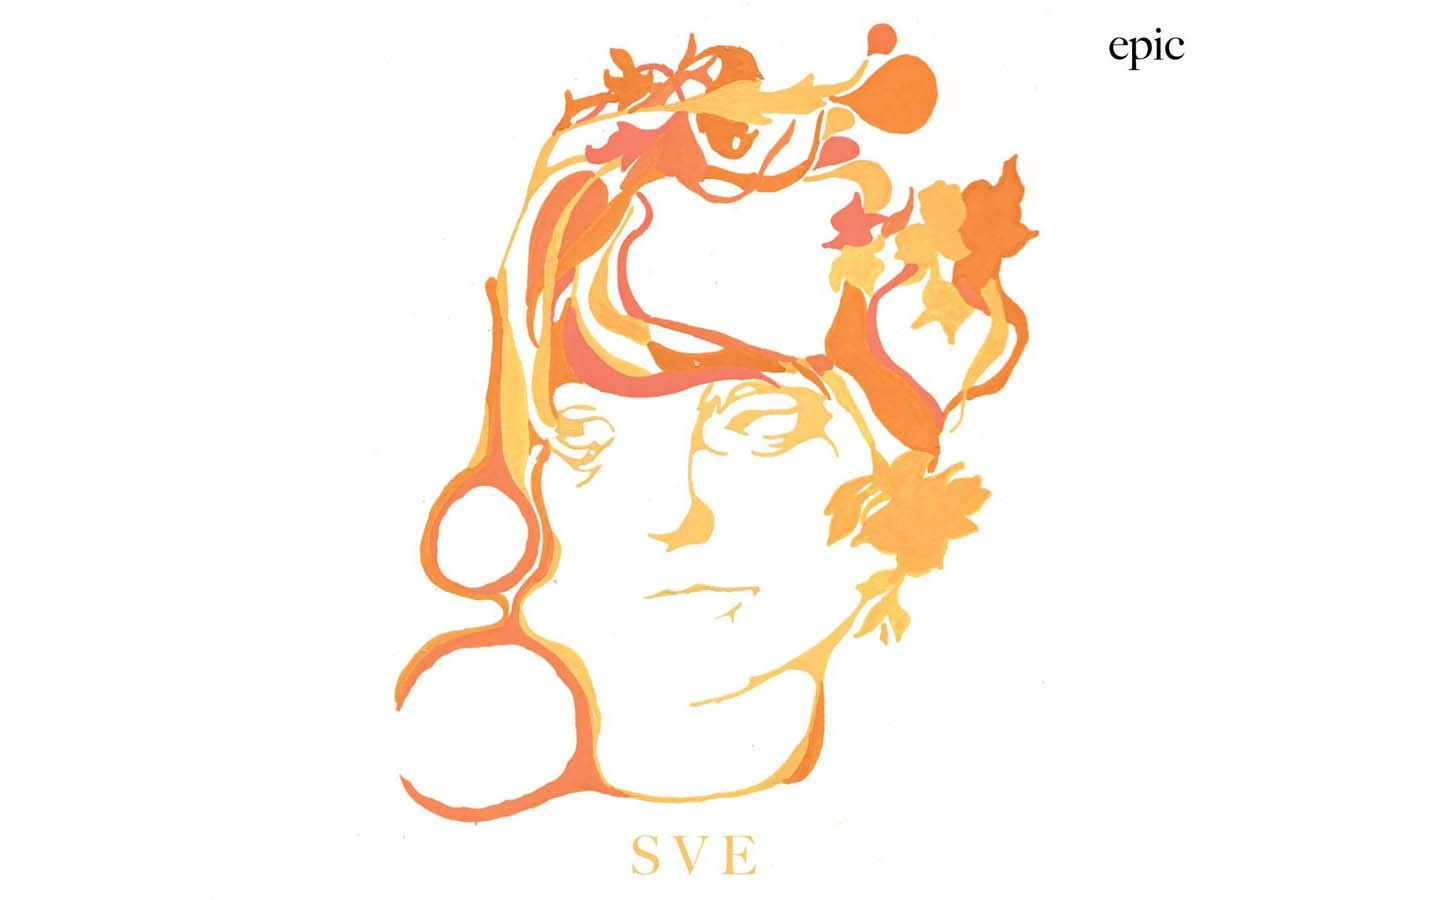 epic - BY SHARON VAN ETTEN - BA DA BING